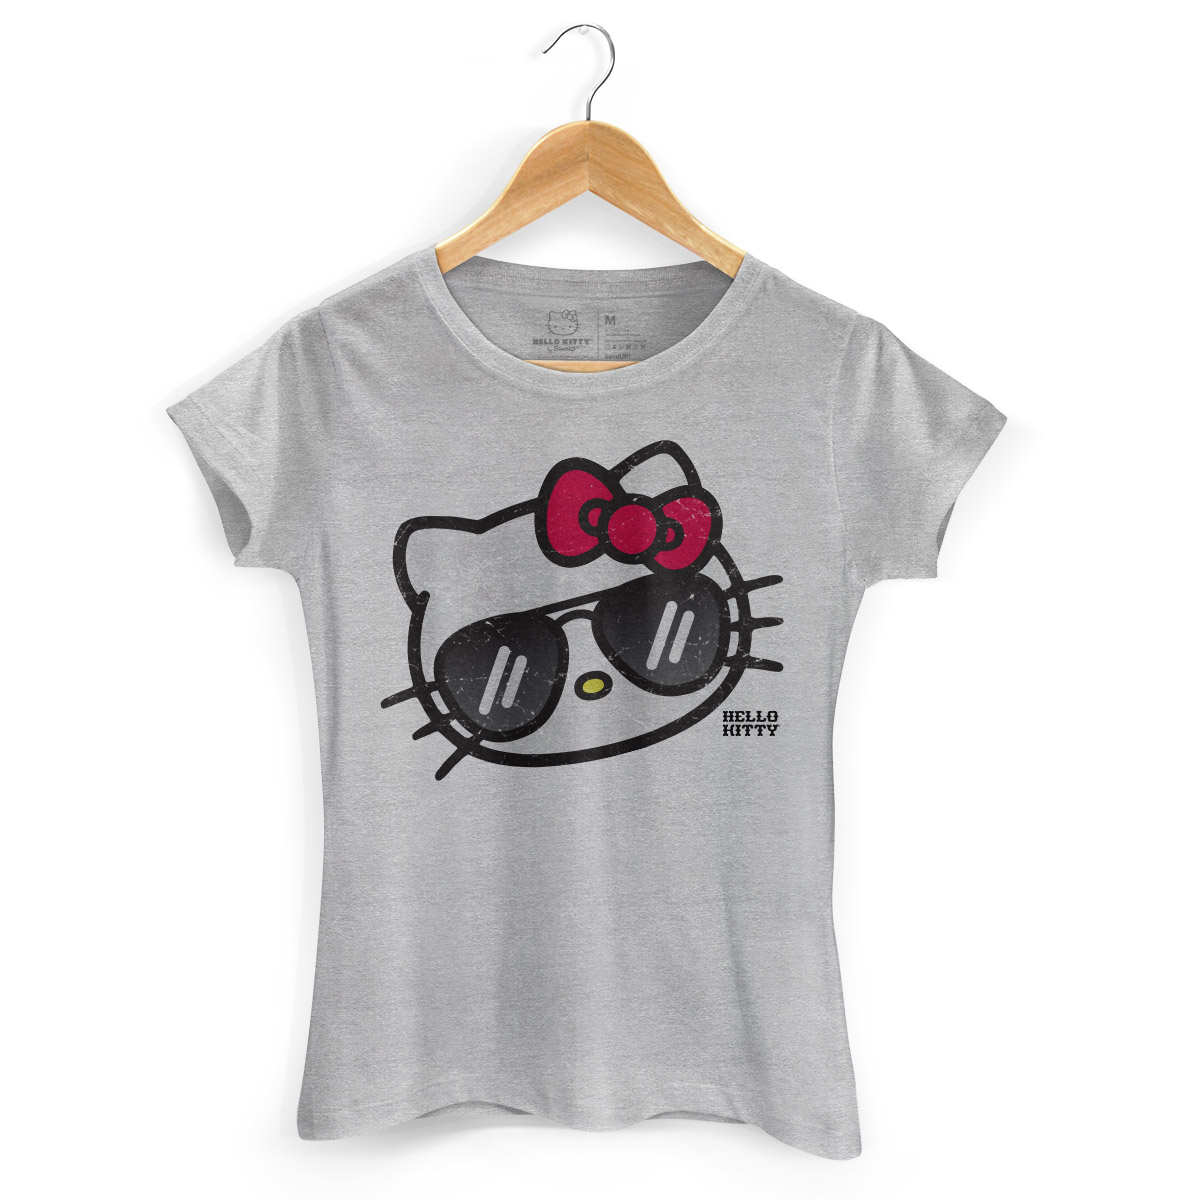 Camiseta Hello Kitty Sunglasses